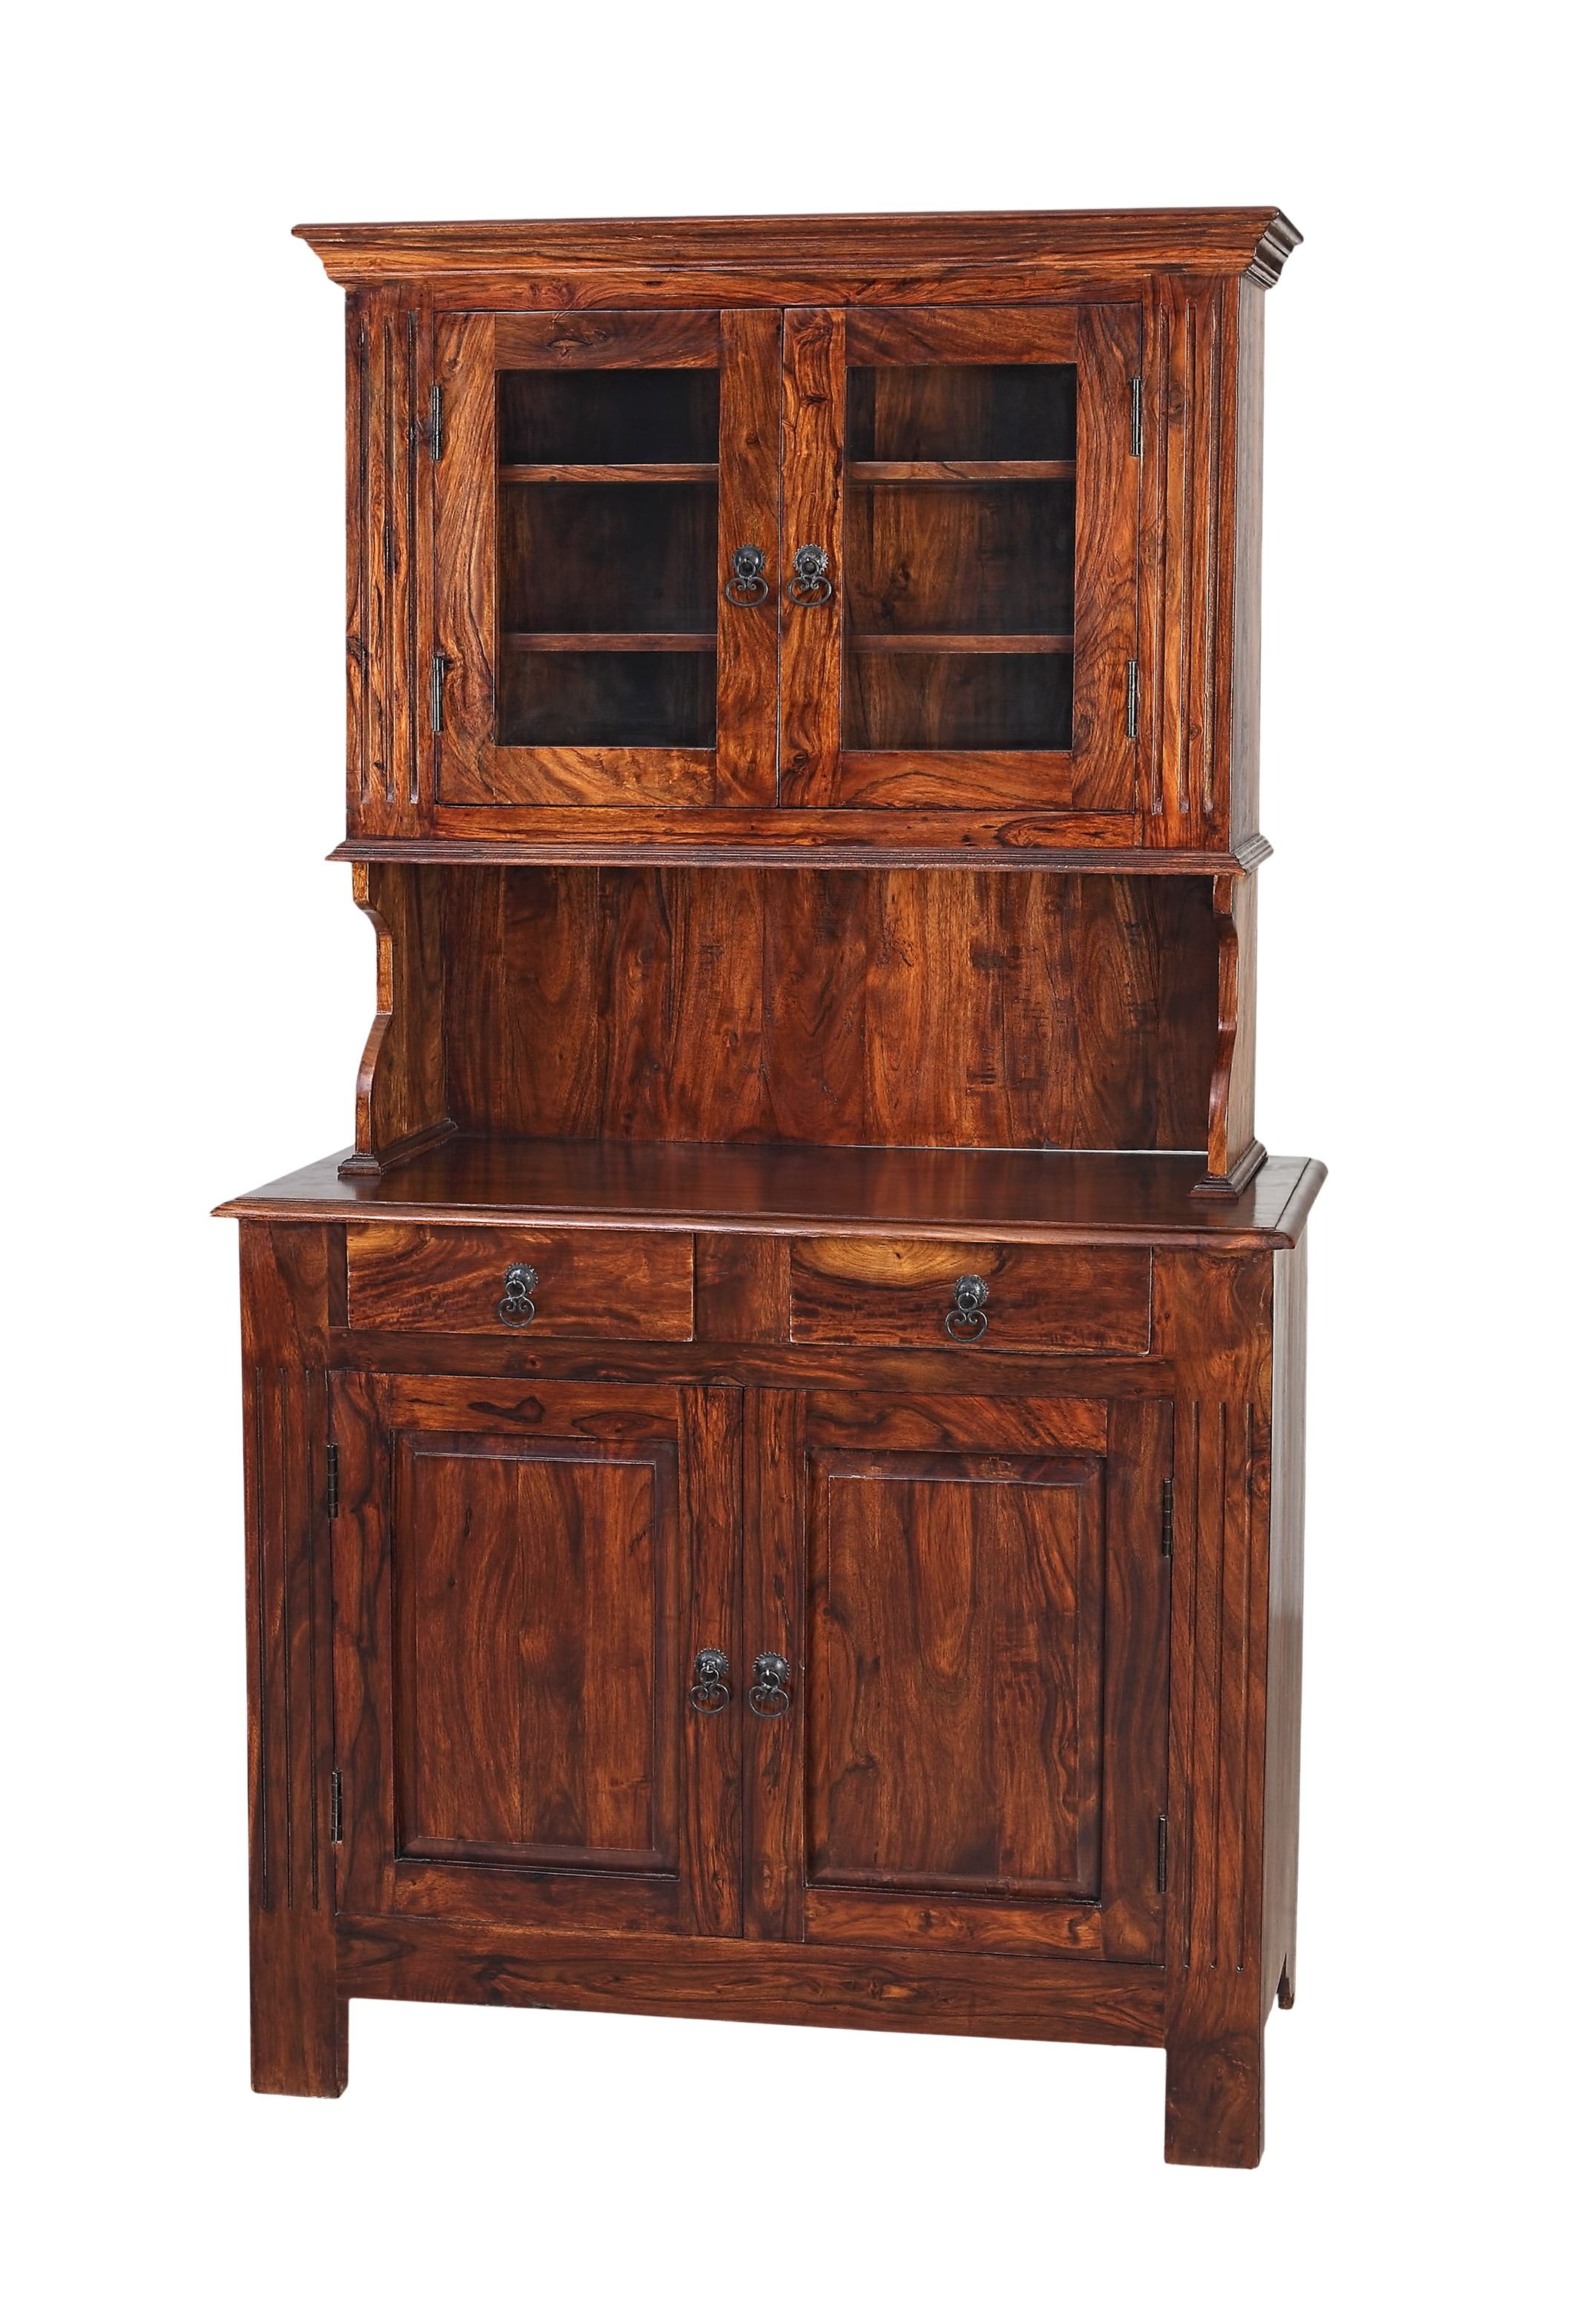 What Are Hoosier Cabinets